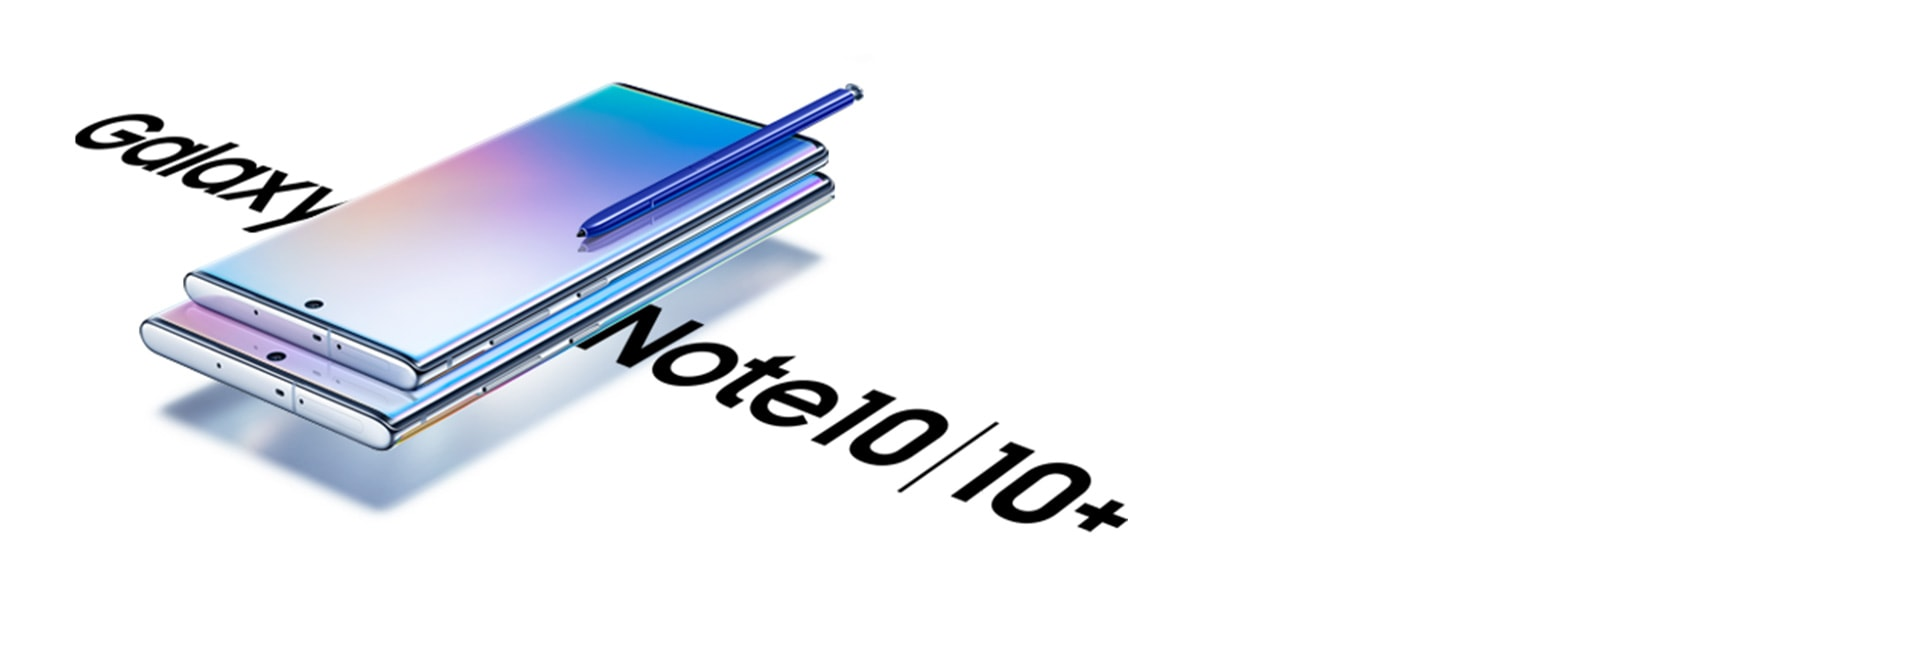 Note-10